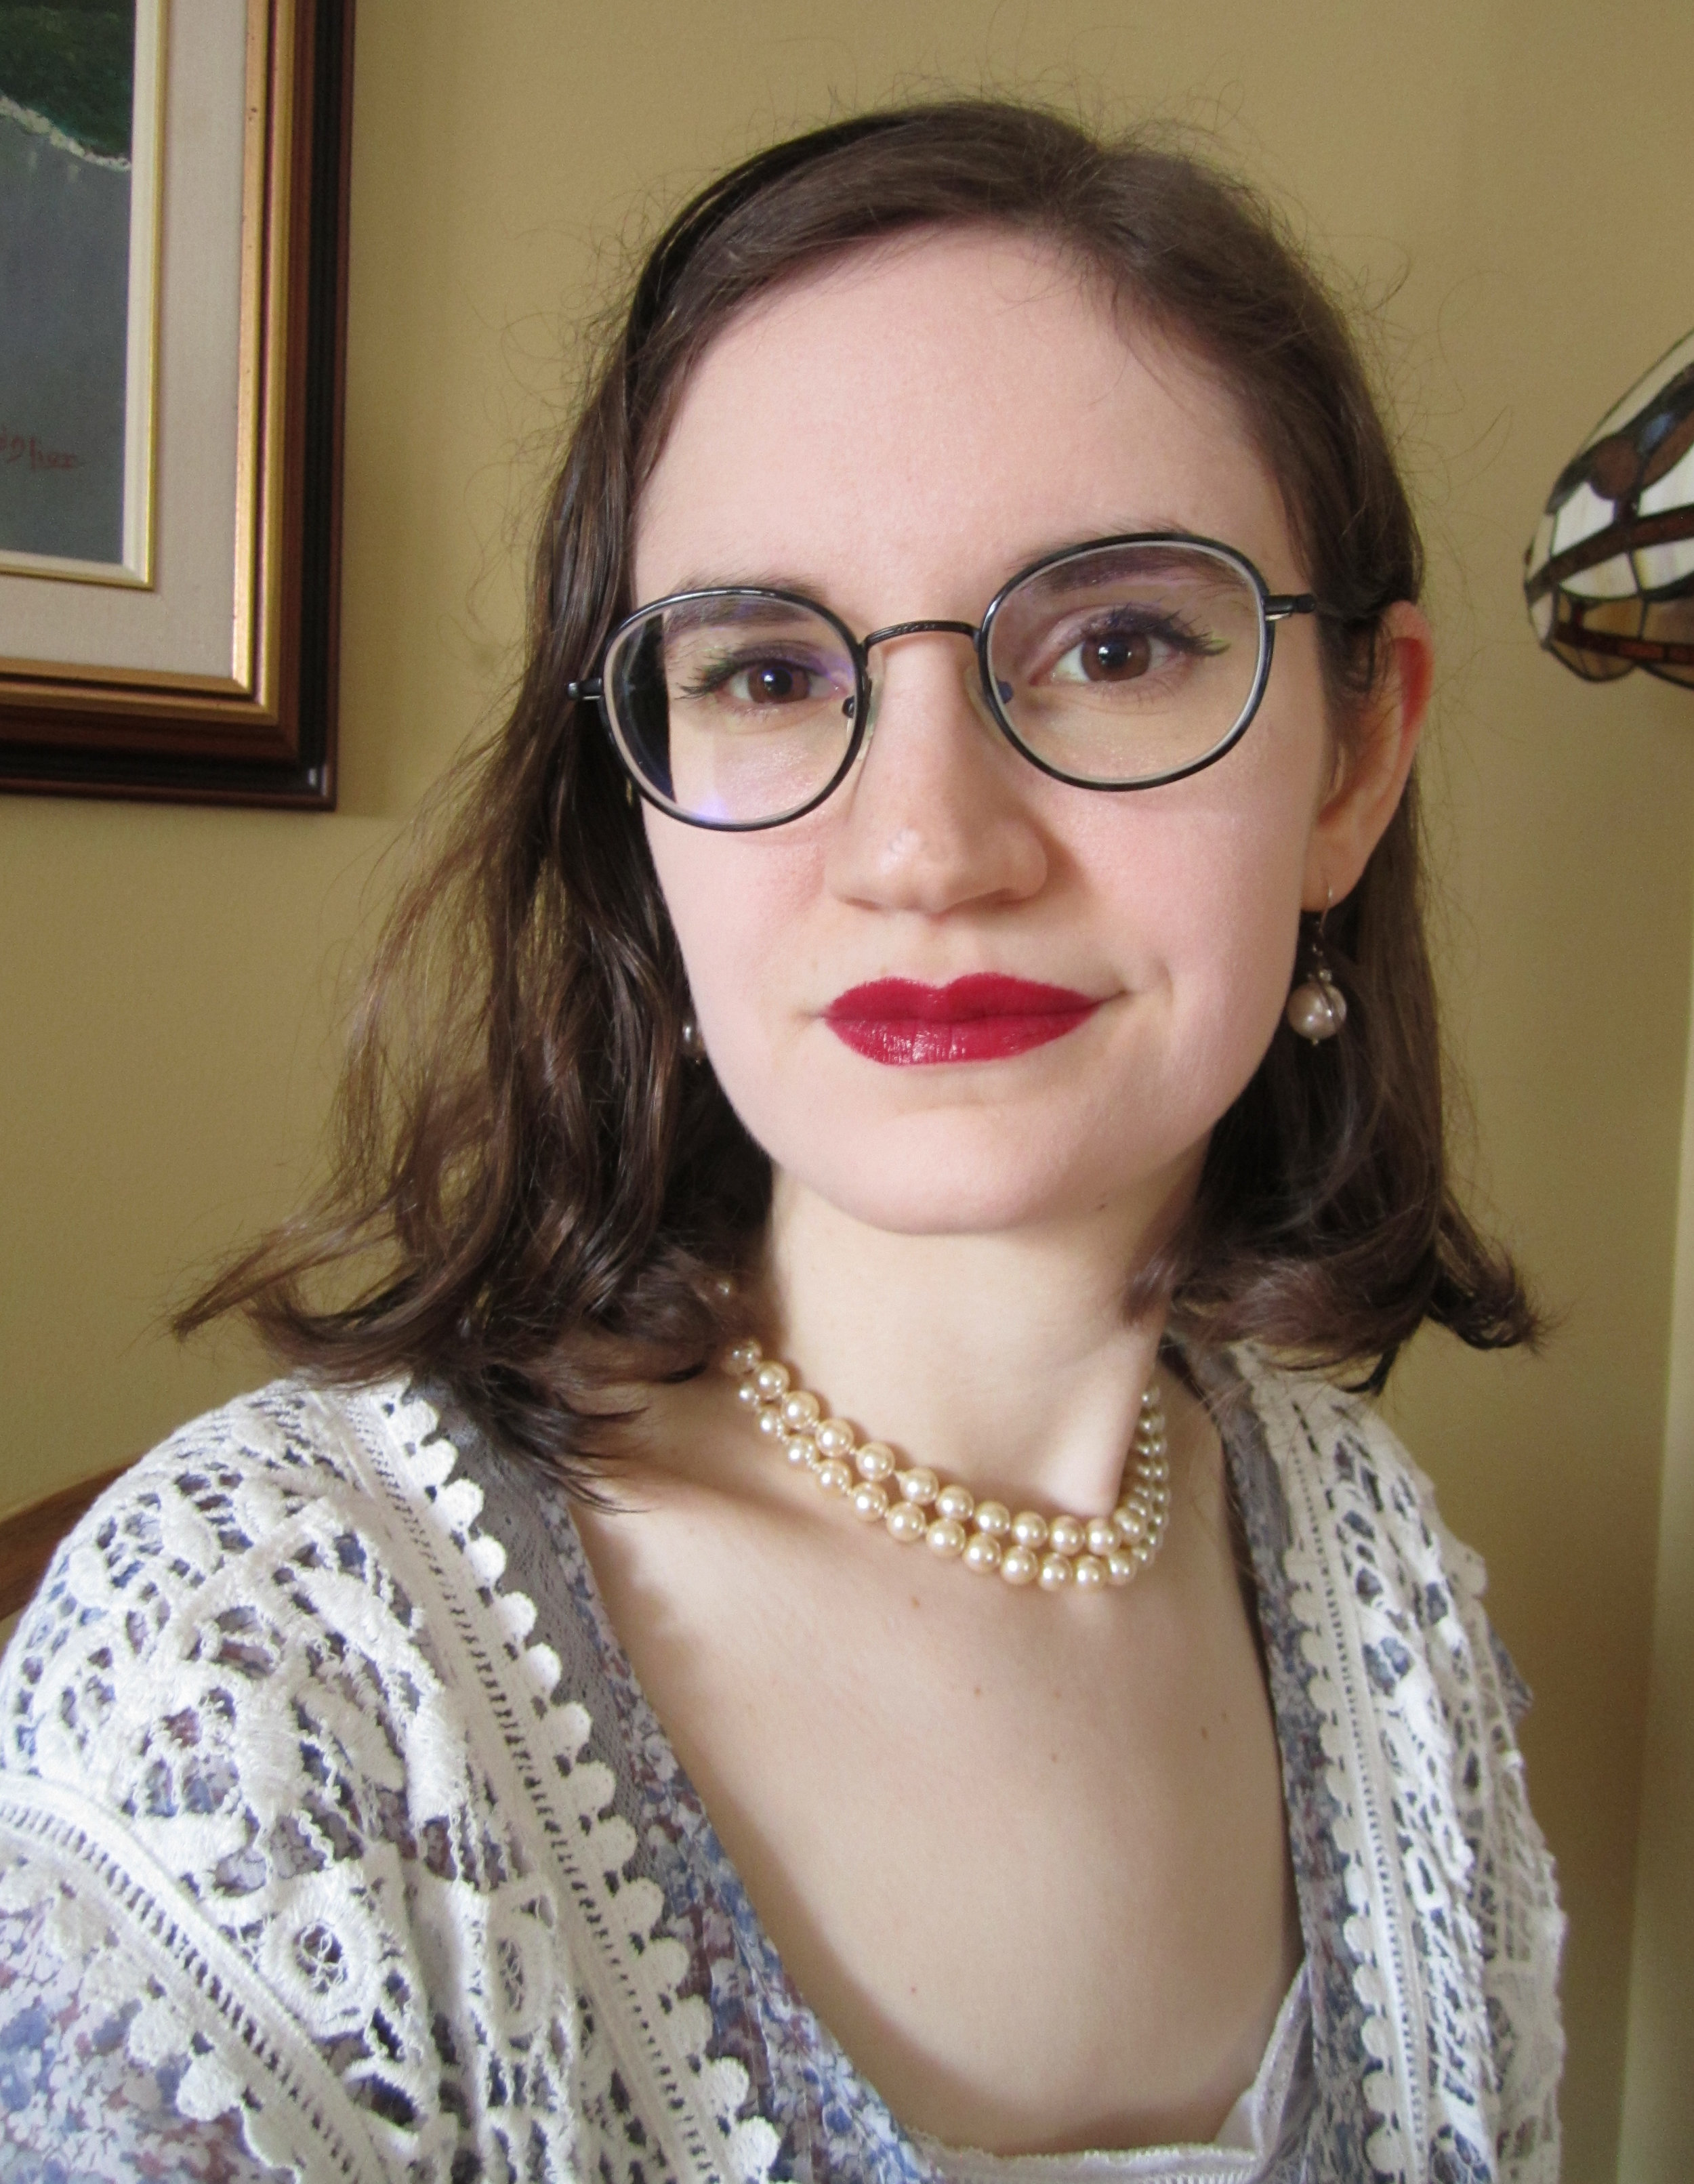 Picture shows the head and shoulders of a white woman with medium-length brown hair, seated against a cream-coloured wall. She is wearing round glasses, dark red lipstick, pearls, and a lacy shawl draped over a pale purple blouse. The edges of a framed painting and a lamp can be seen in the background.